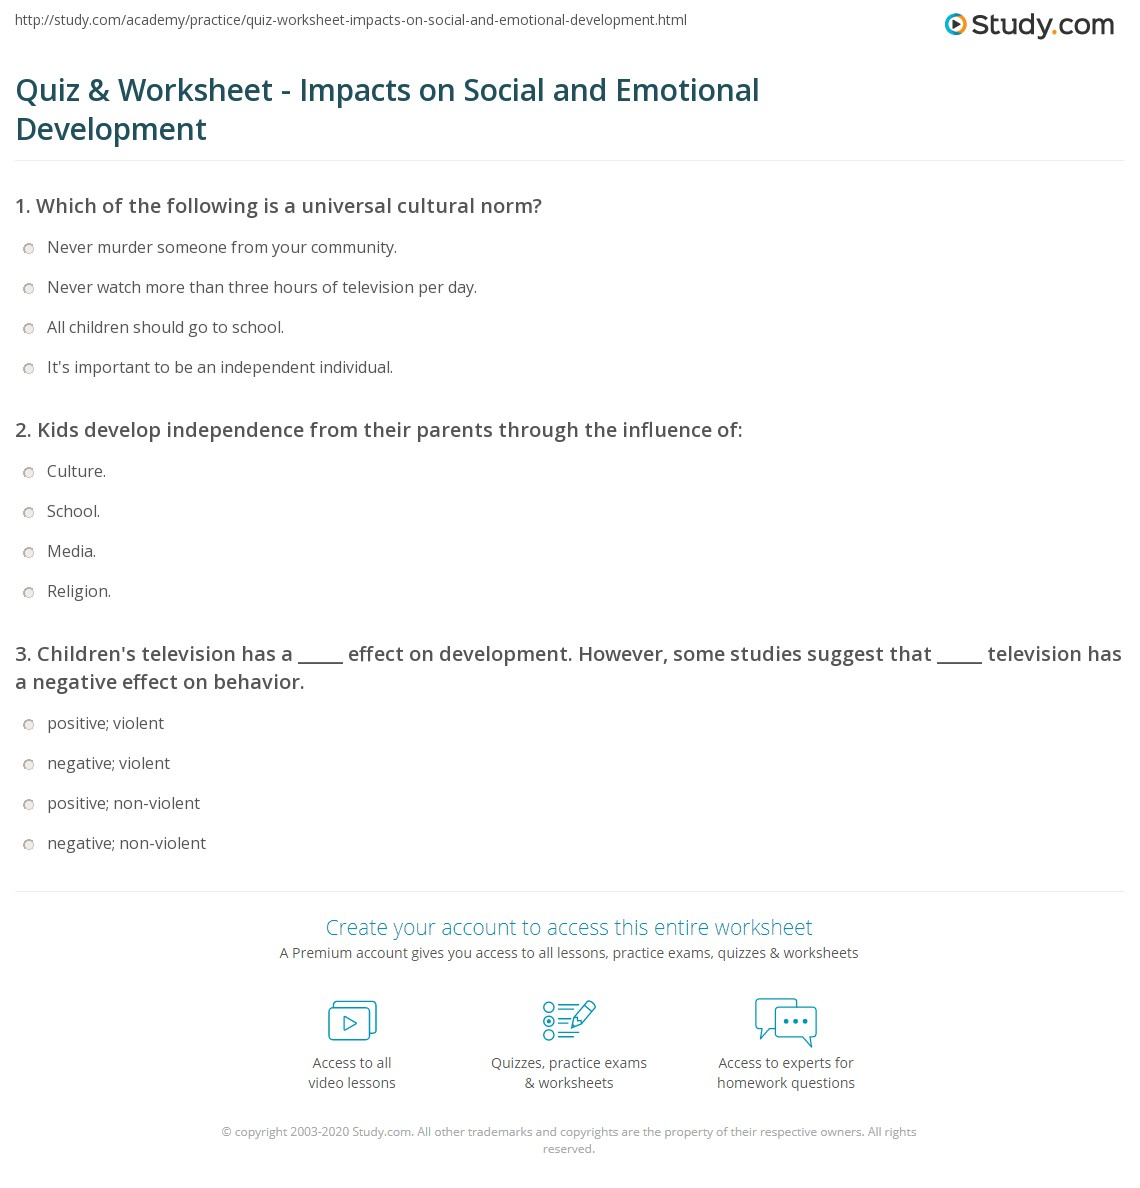 quiz worksheet impacts on social and emotional development  print the role of culture school and media in social and emotional development worksheet